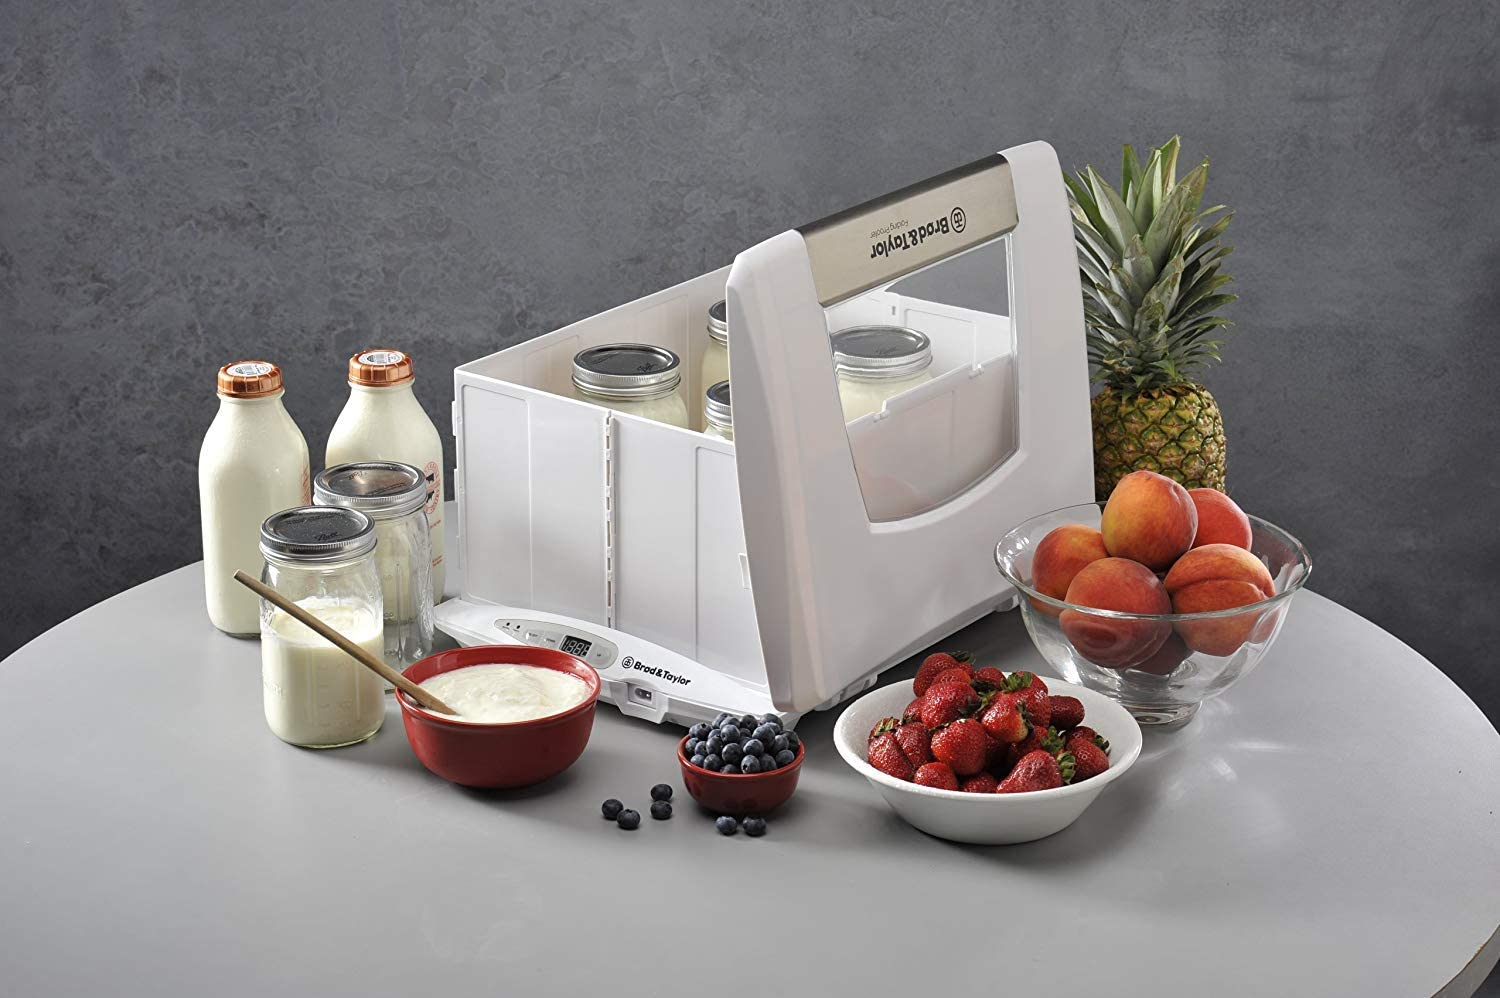 Amazon.com: Proofer de pan plegable y fabricante de yogurt ...